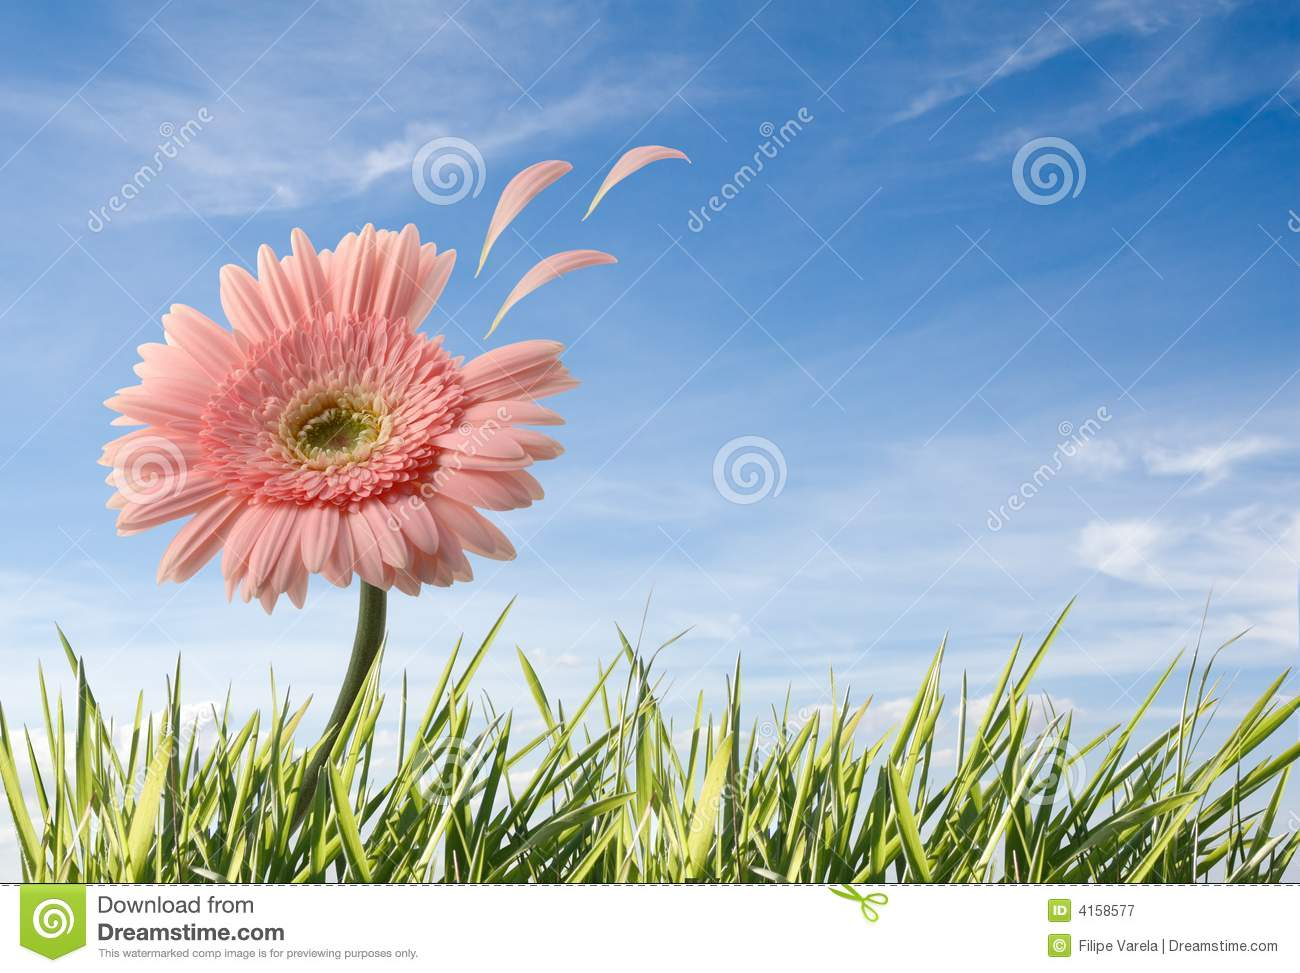 Flower with leafs flying